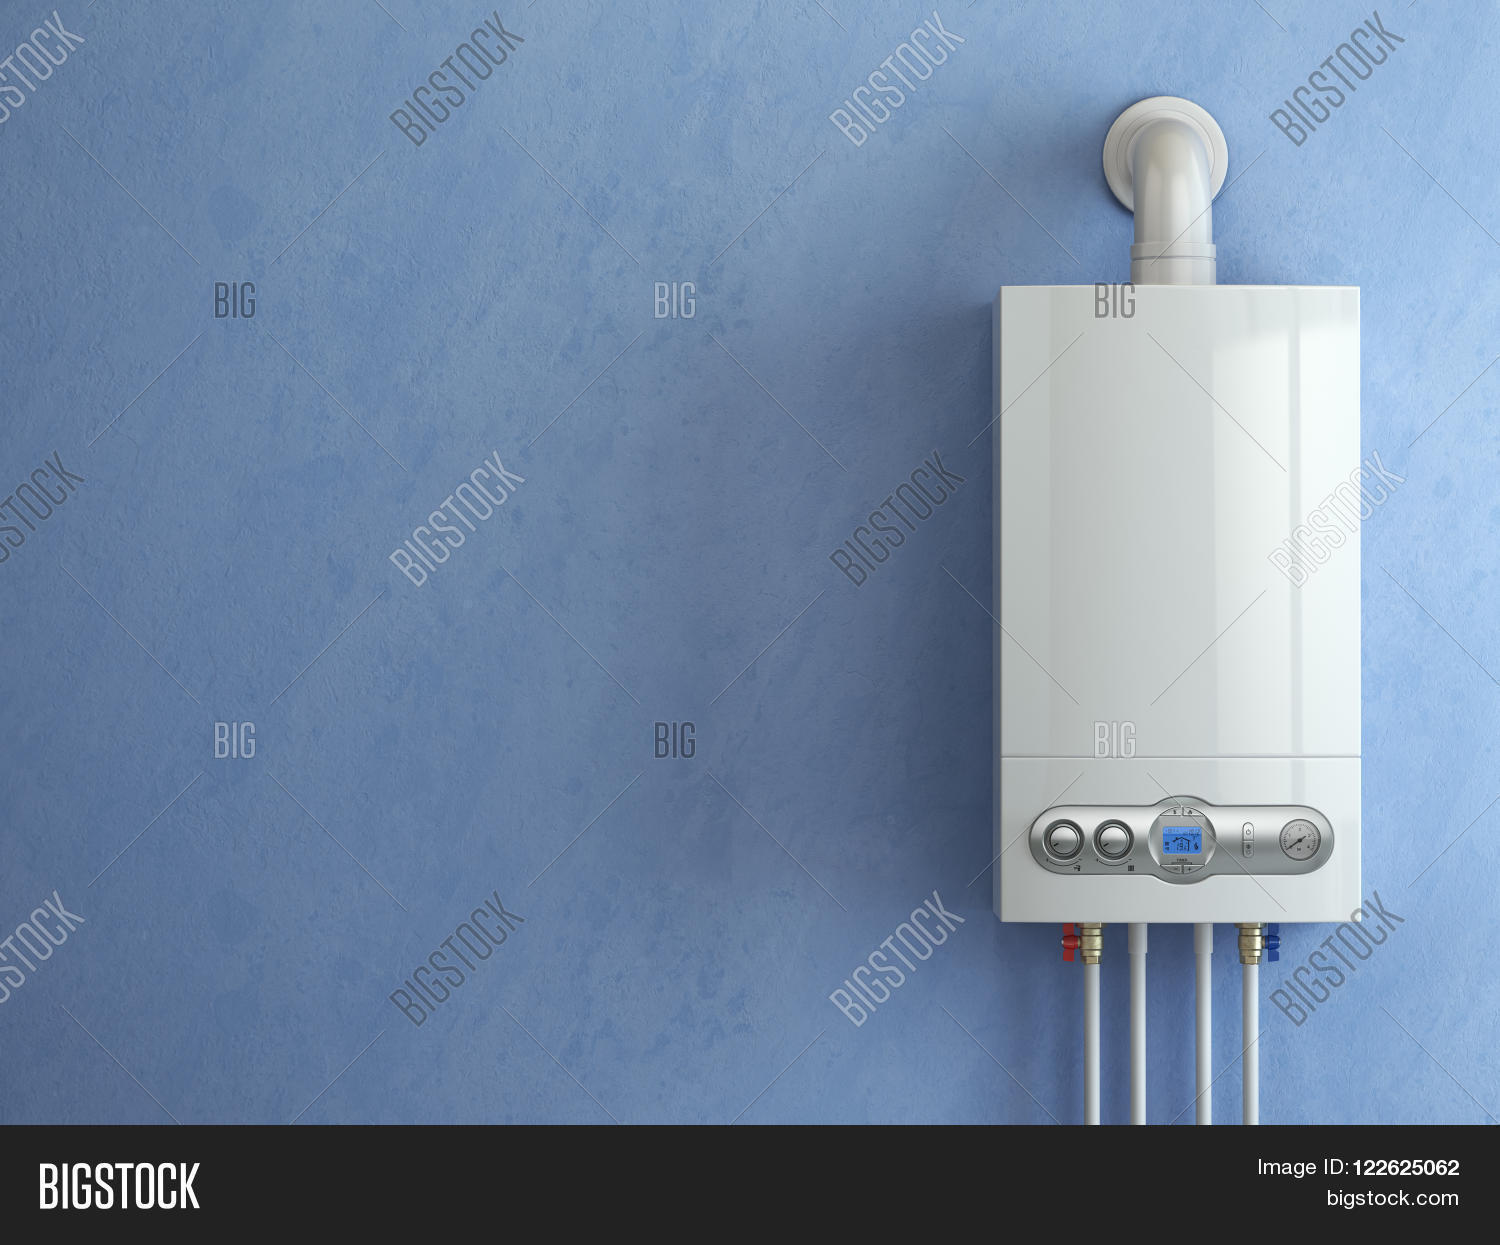 Gas Boiler On Blue Image & Photo (Free Trial) | Bigstock